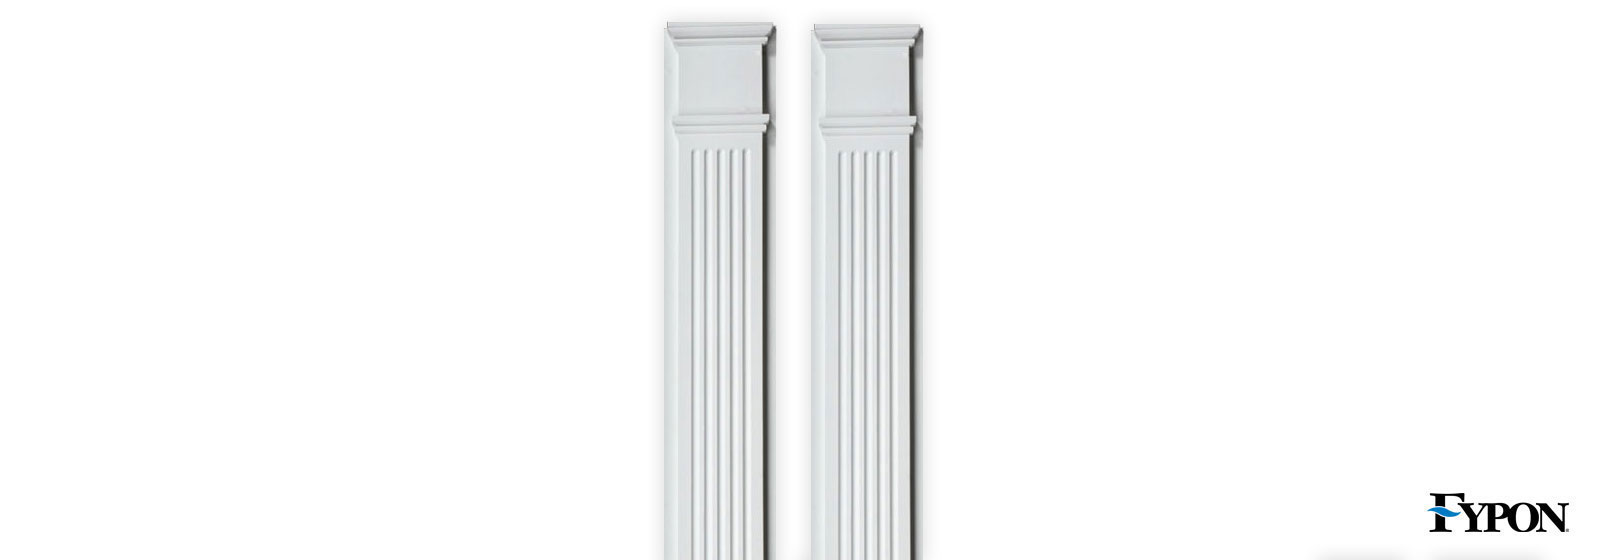 fypon pilasters fypon door pilasters shop diy